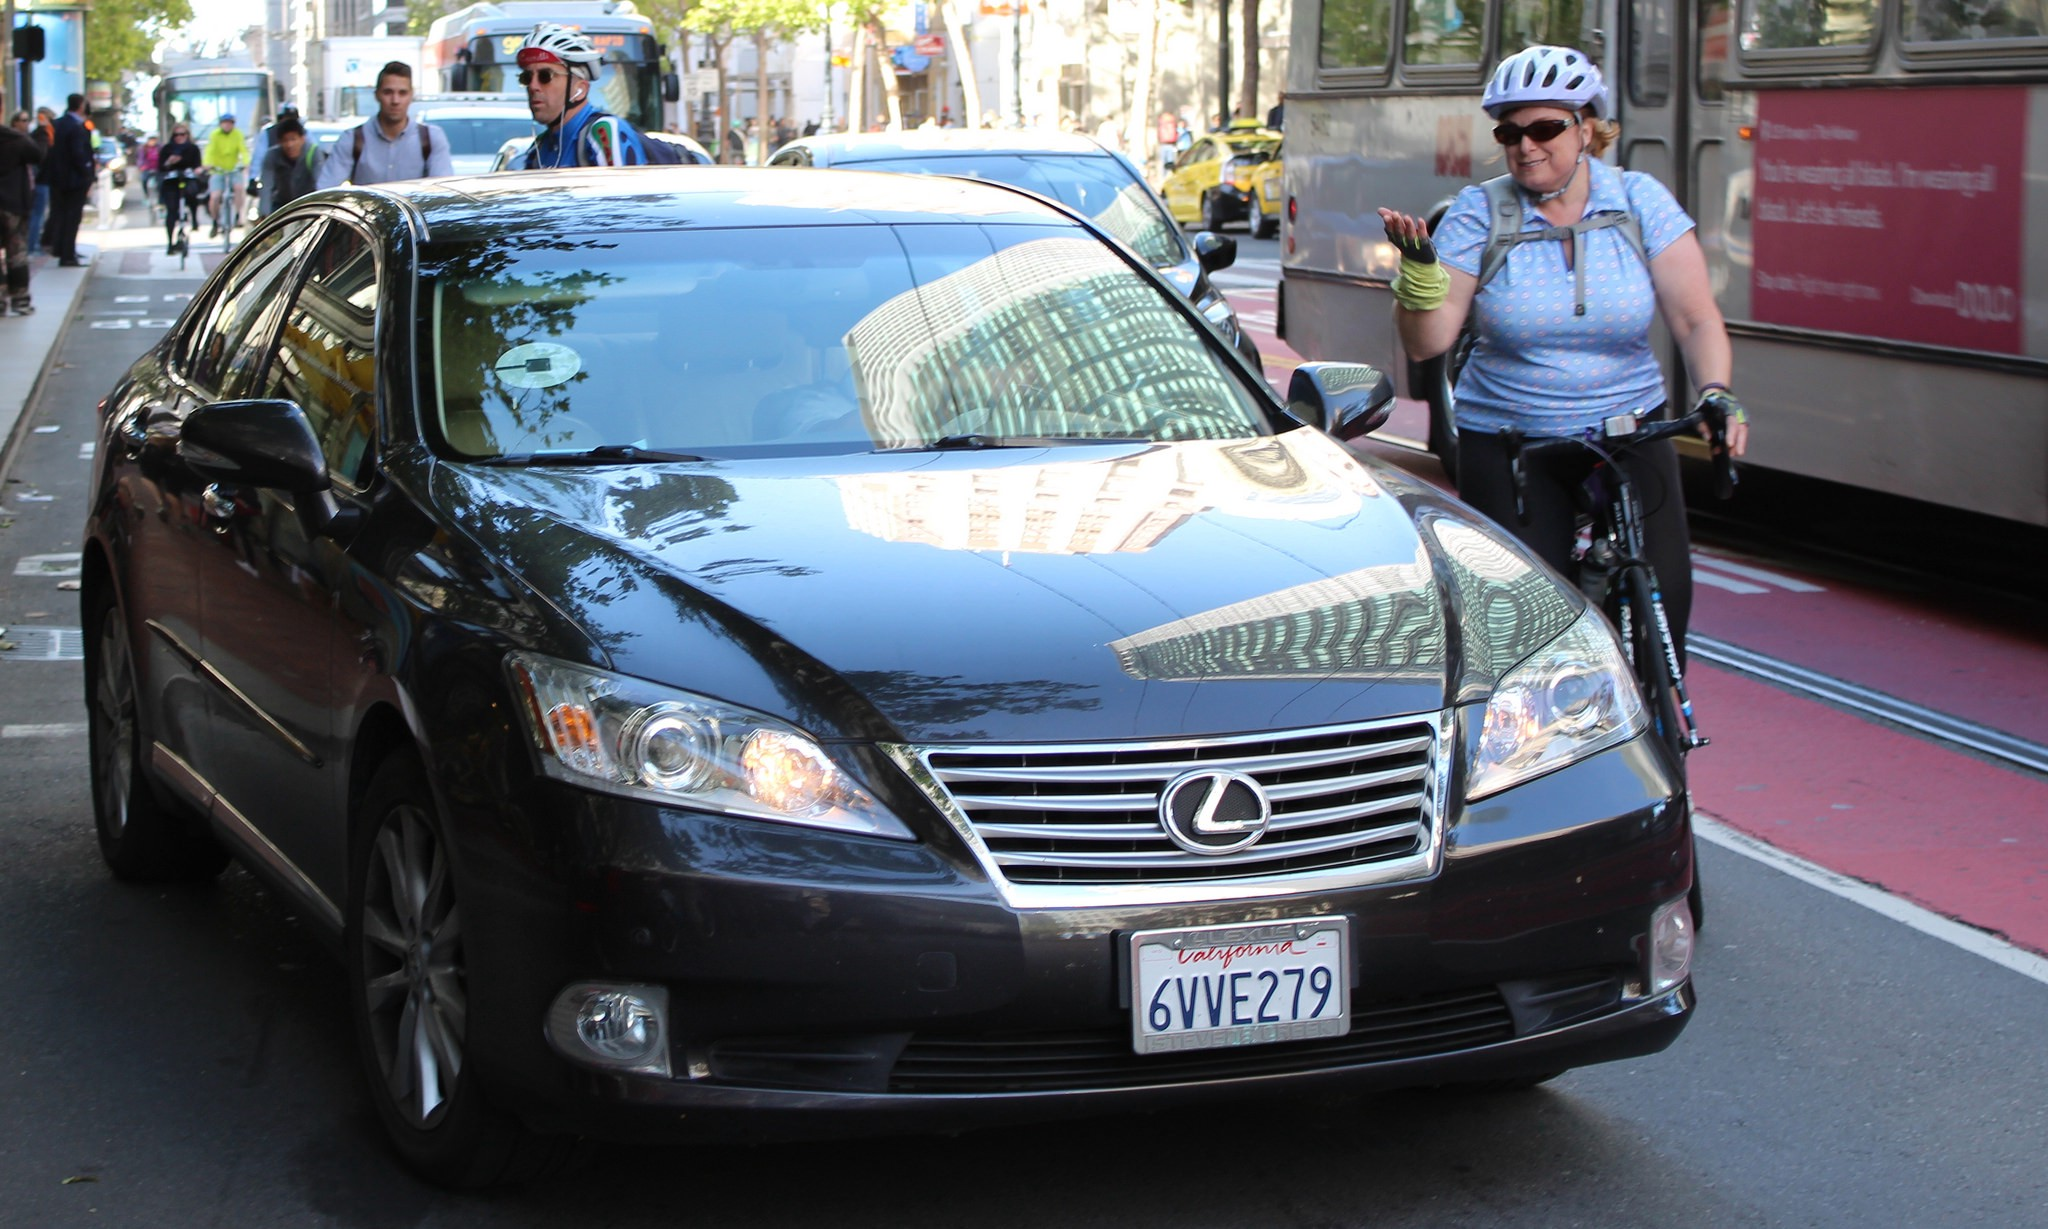 Lyft and Uber: you control bike share in SF  Now what?